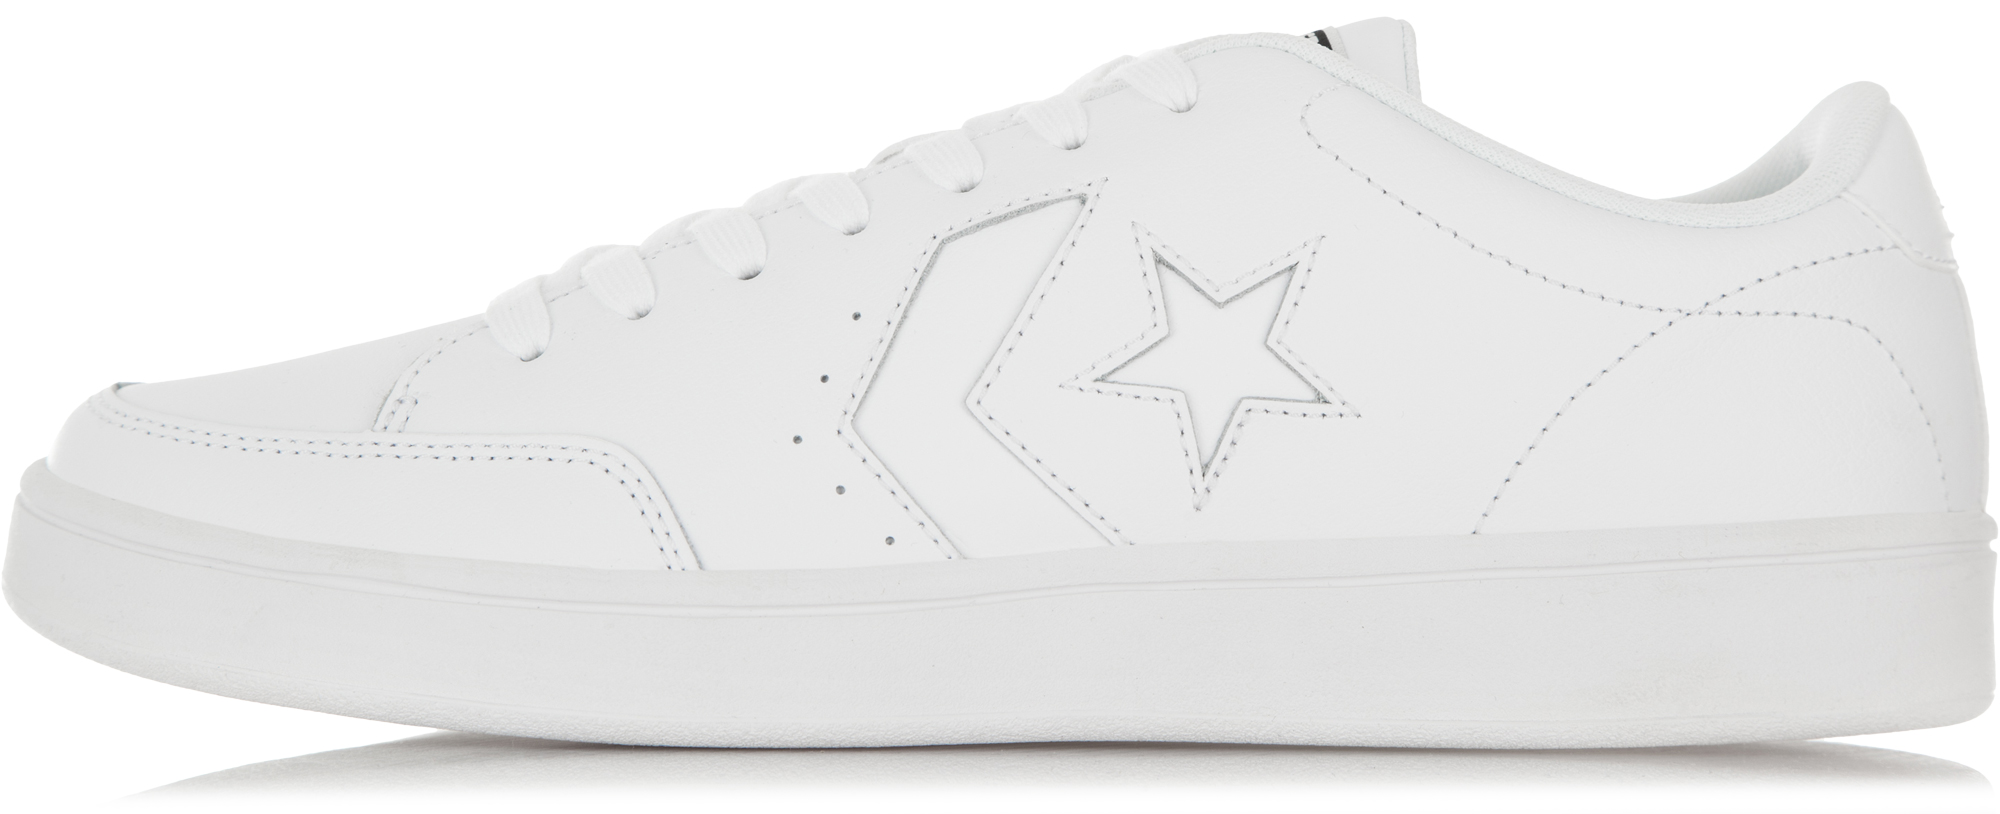 Converse Кеды мужские Converse Star Court bovi простыня bunny цвет горький шоколад 240х280